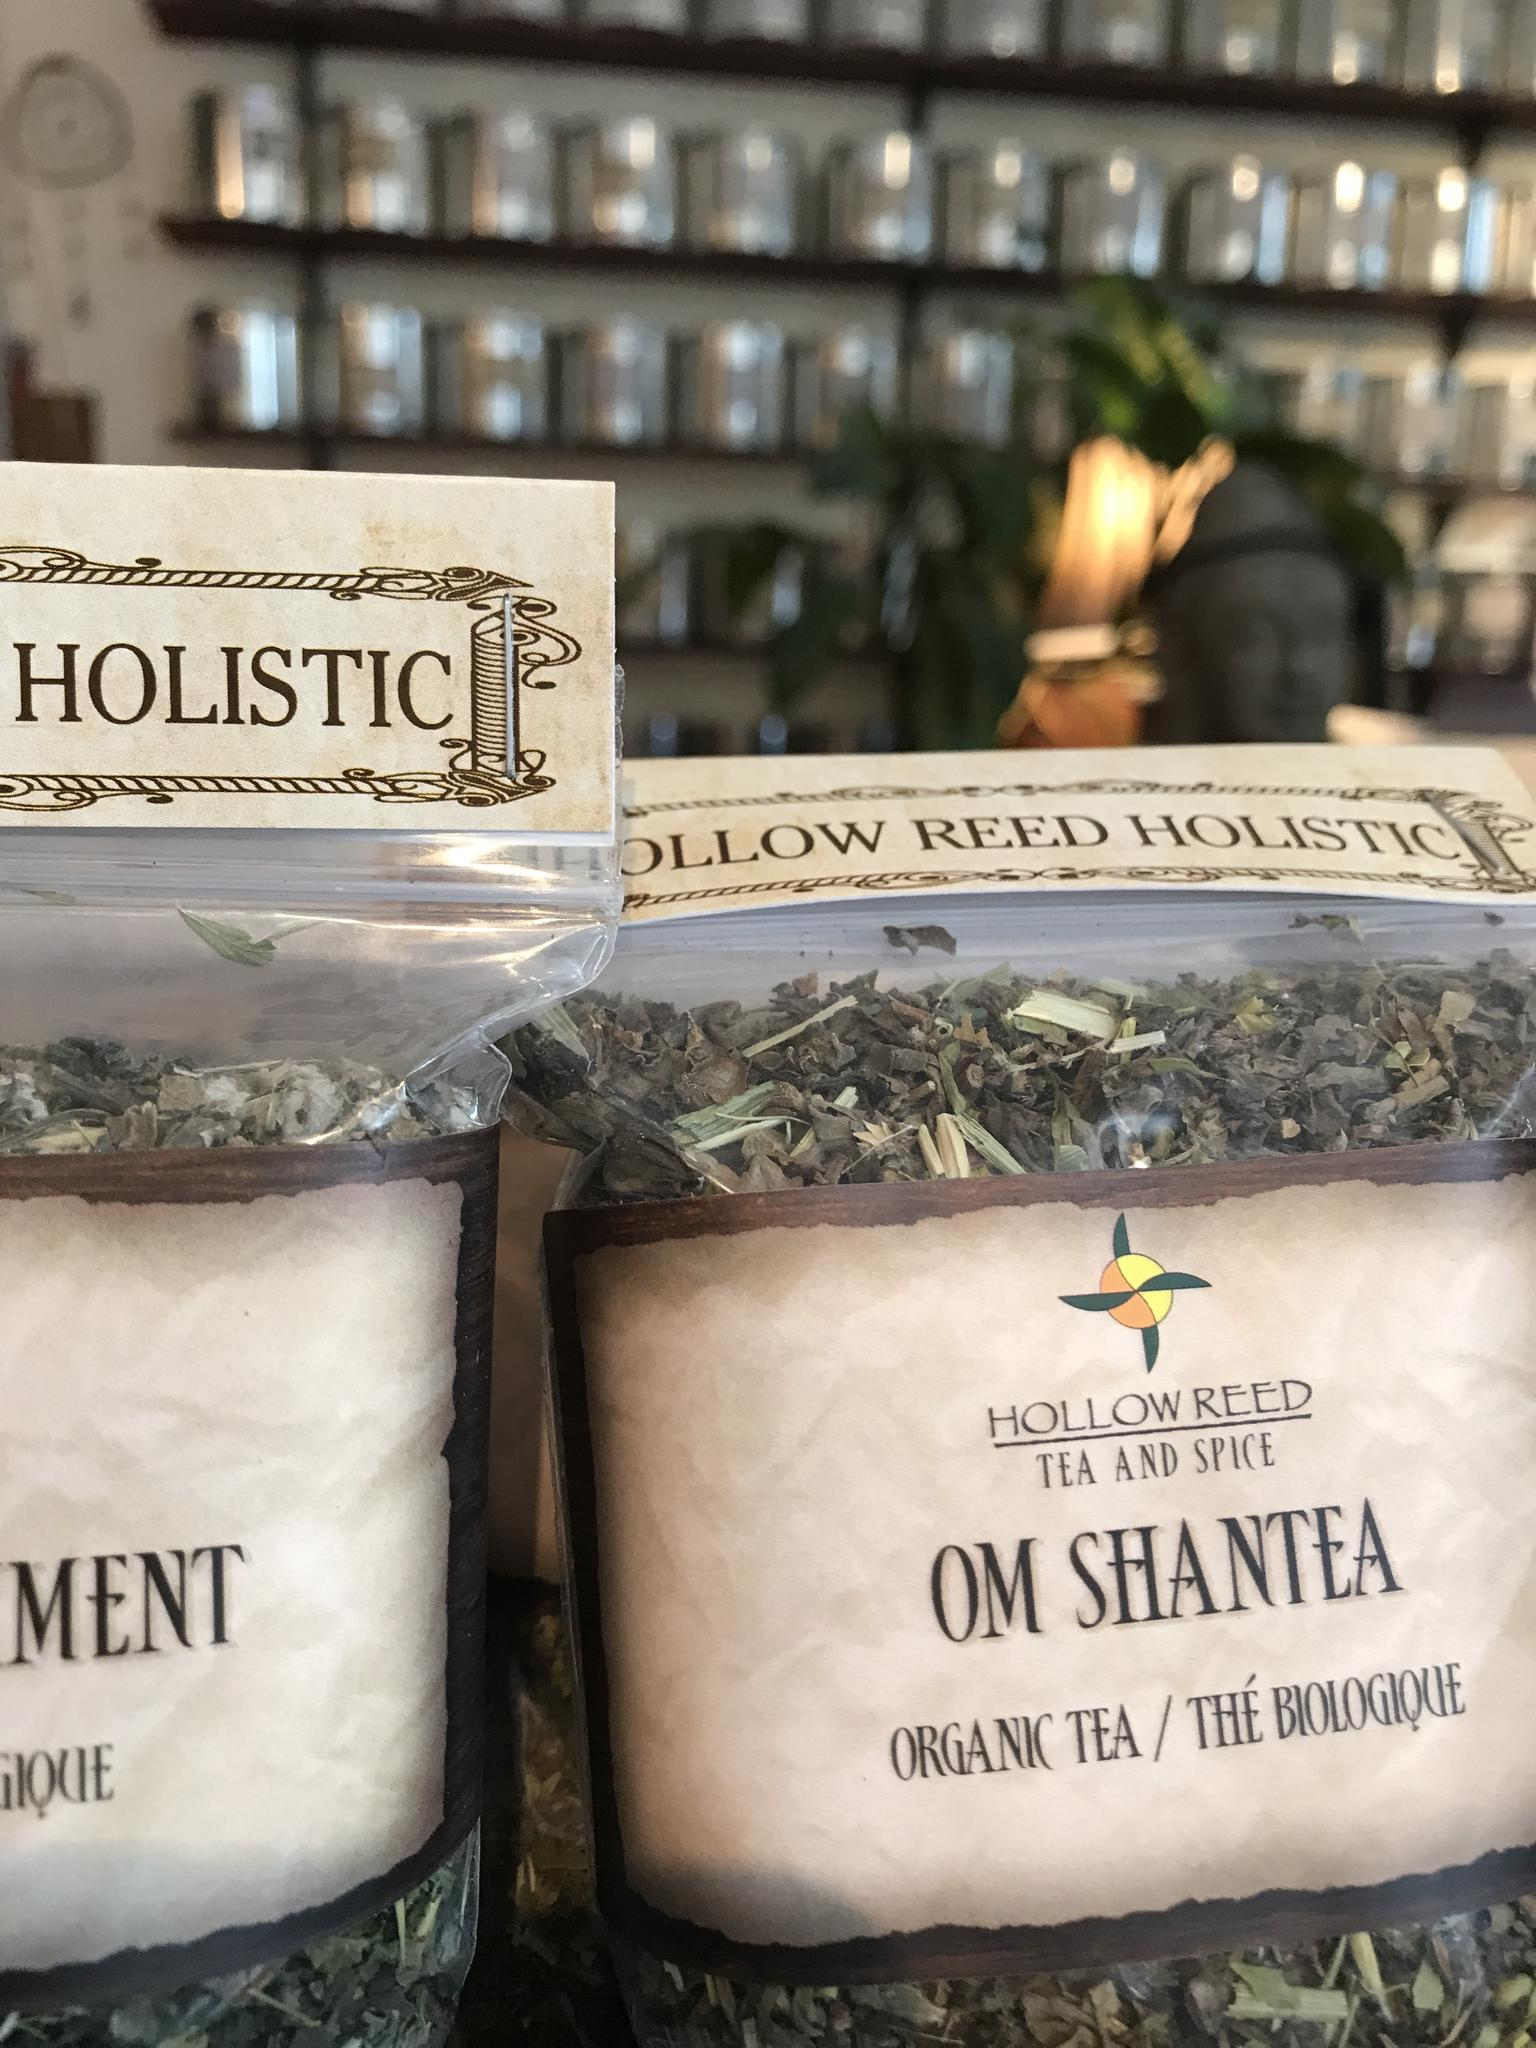 Canada's best source for quality herbs, essential oils and much more